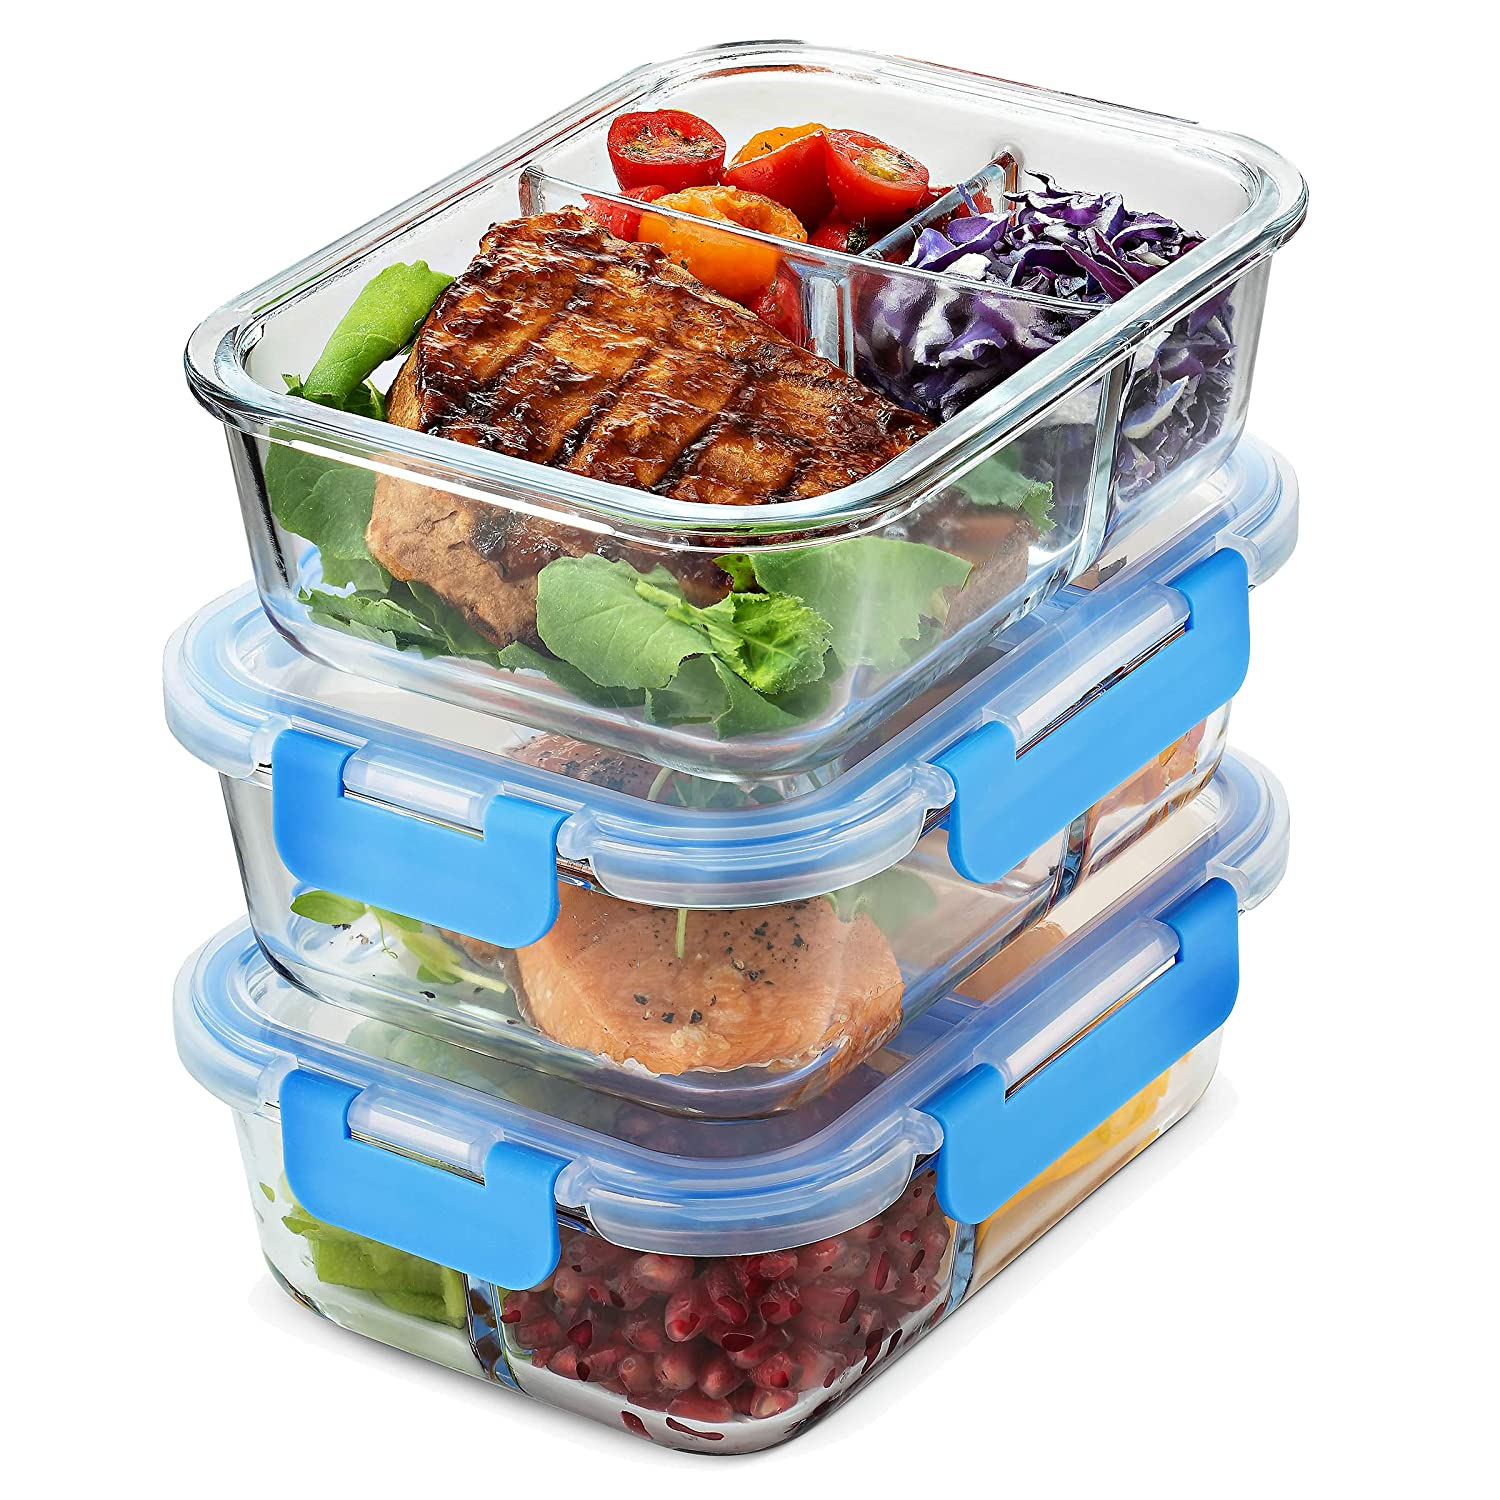 Glass Meal Prep Containers 3-Compartment - 3-Pack 32 oz. Freezer to Oven Safe Airtight Food Storage Container Set with Hinged Locking Lids BPA Free, Great On The Go Portion Control Lunch Containers FinrDine FD-G601